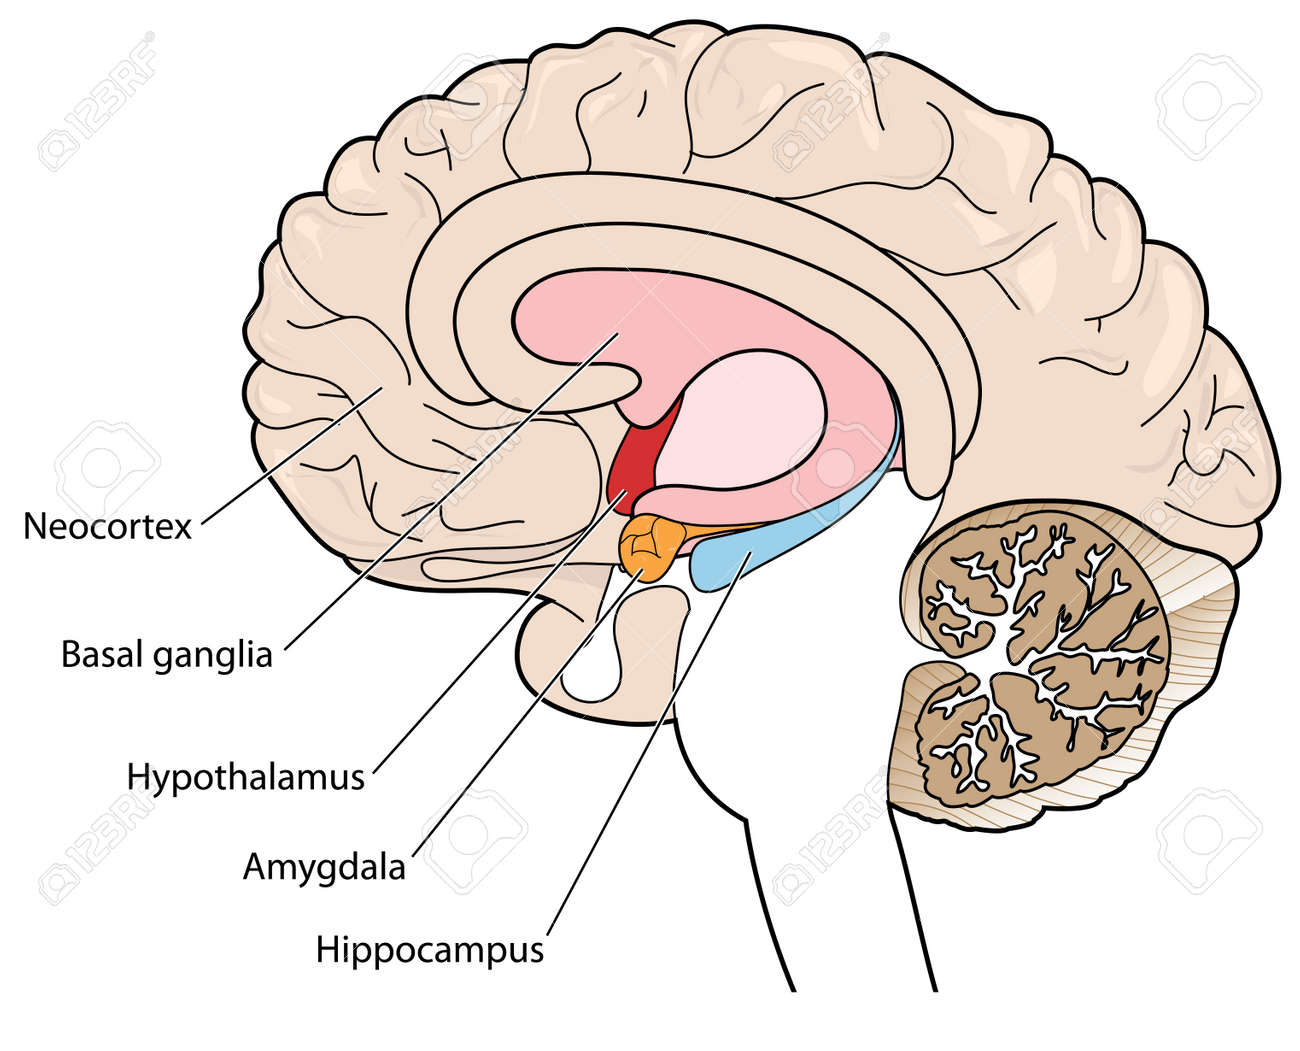 The Brain In Cross Section Showing The Basal Ganglia, Hypothalamus ...